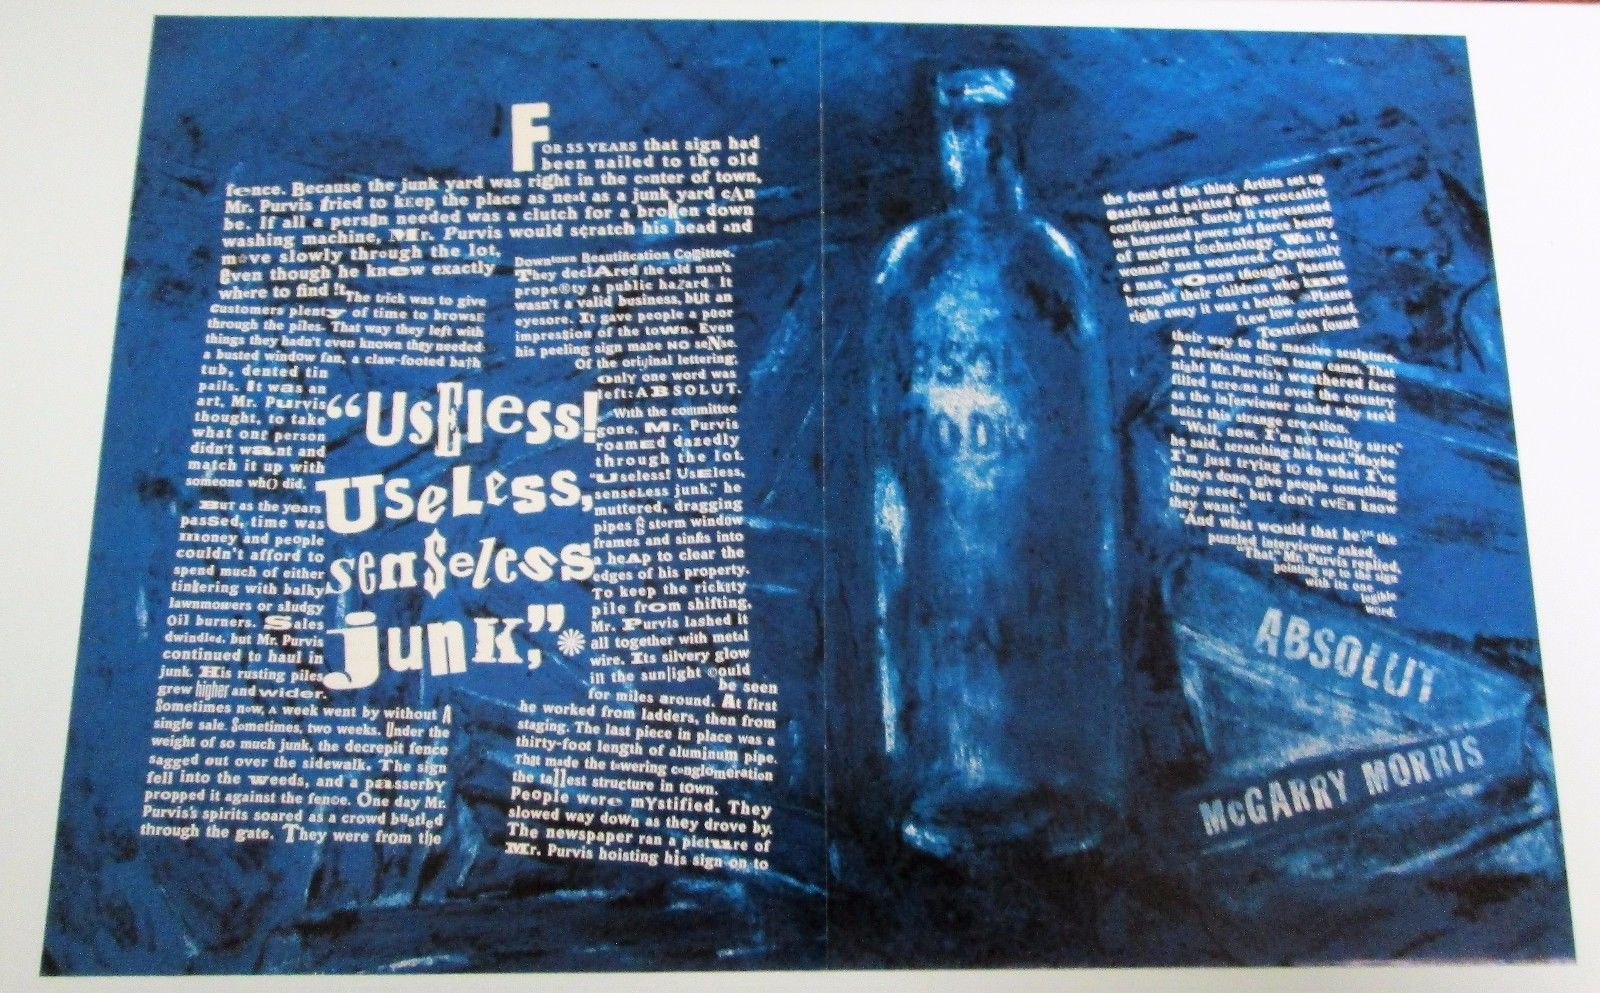 Primary image for ABSOLUT McGARRY MORRIS Vodka Magazine Ad 2pp MARY McGARRY MORRIS Hard to Find